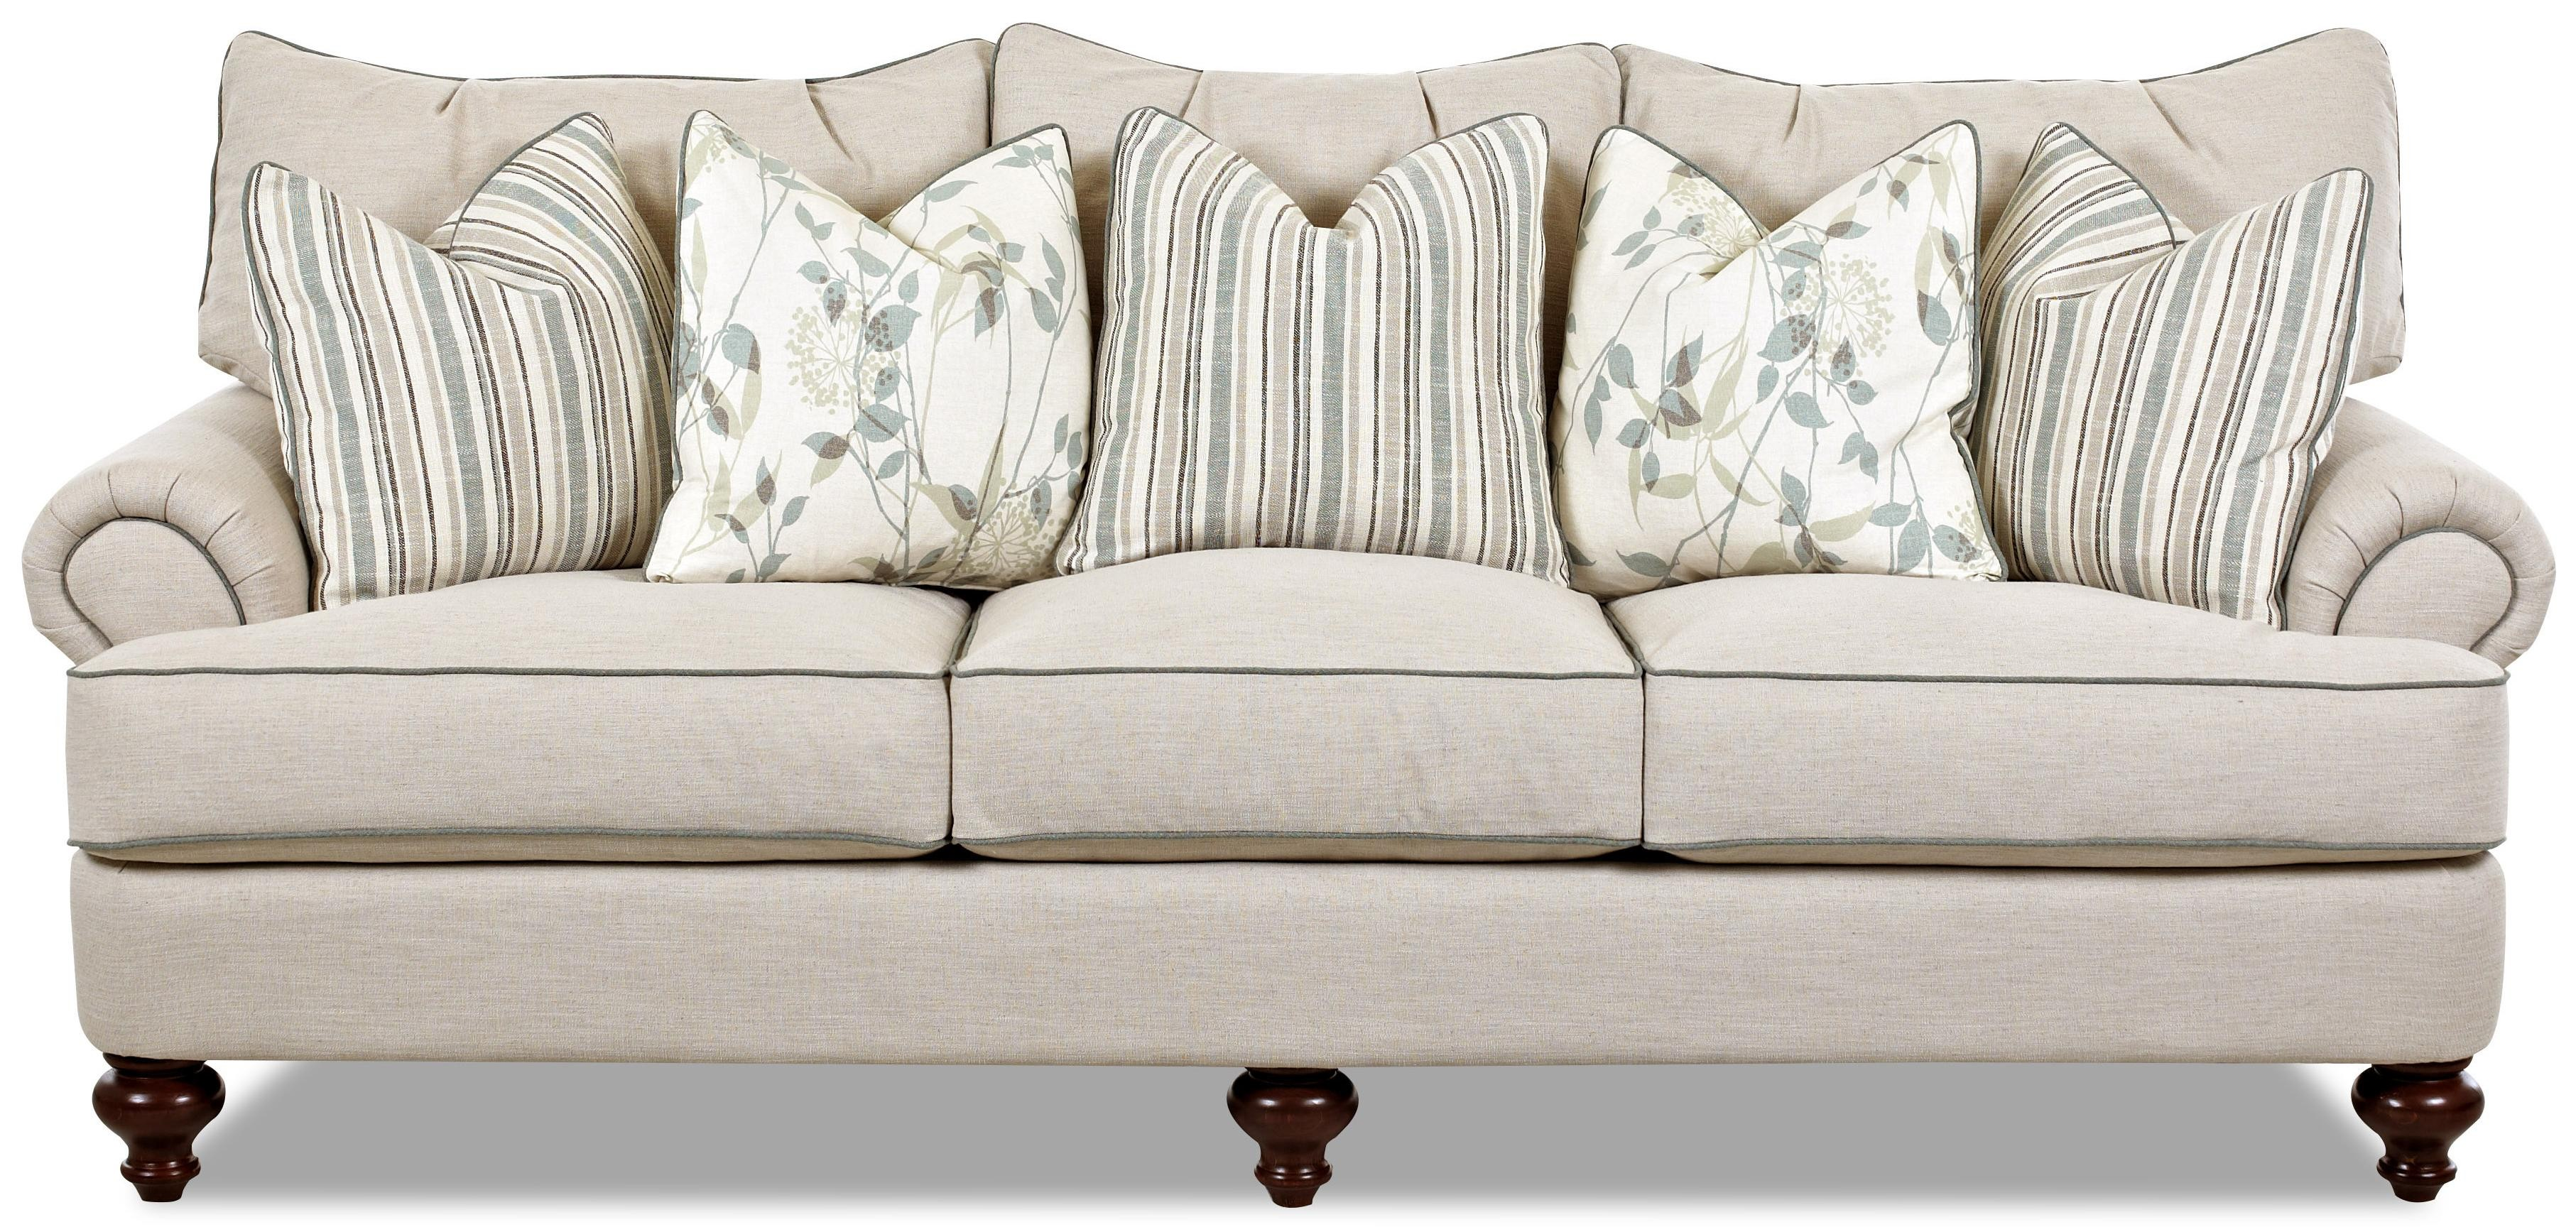 Shabby Chic sofa Elegant Shabby Chic Down Blend sofa by Klaussner Décor